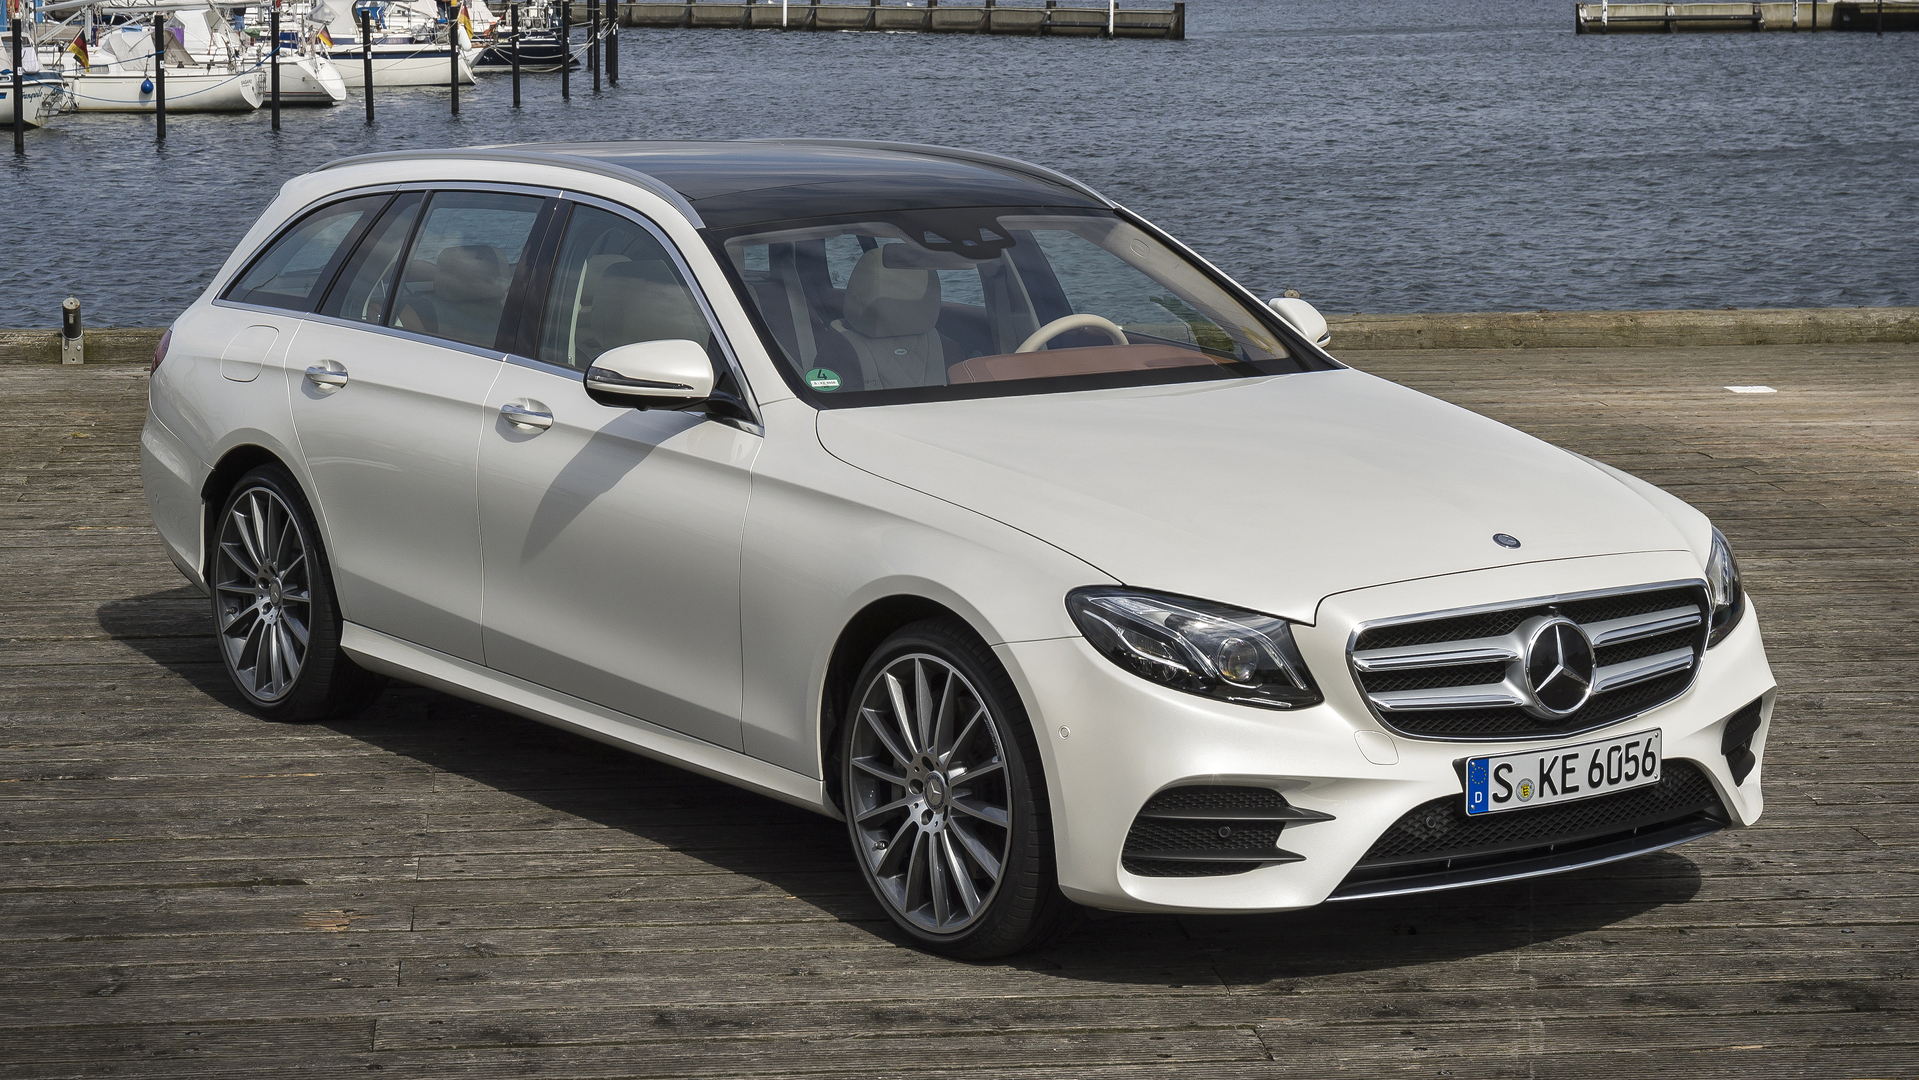 https://icdn-7.motor1.com/images/mgl/XrVWV/s1/2017-mercedes-benz-e400-wagon-review.jpg